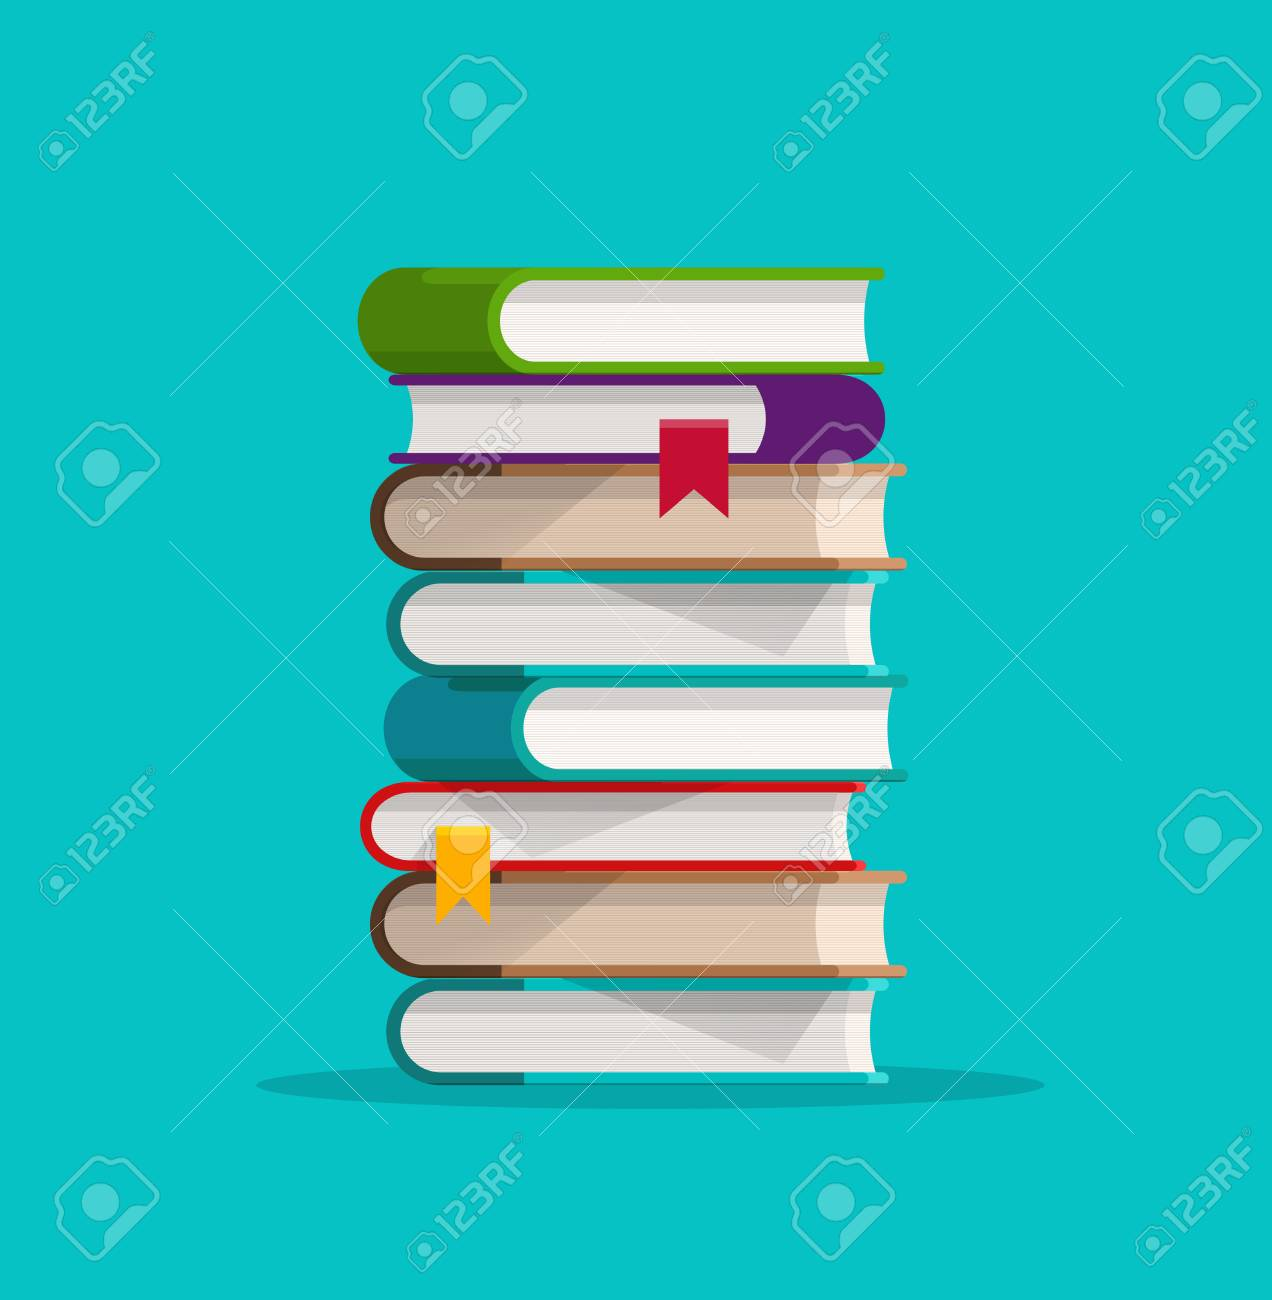 books stack or pile vector illustration flat cartoon paper book rh 123rf com cartoon picture of stack of books cartoon stack of books black and white